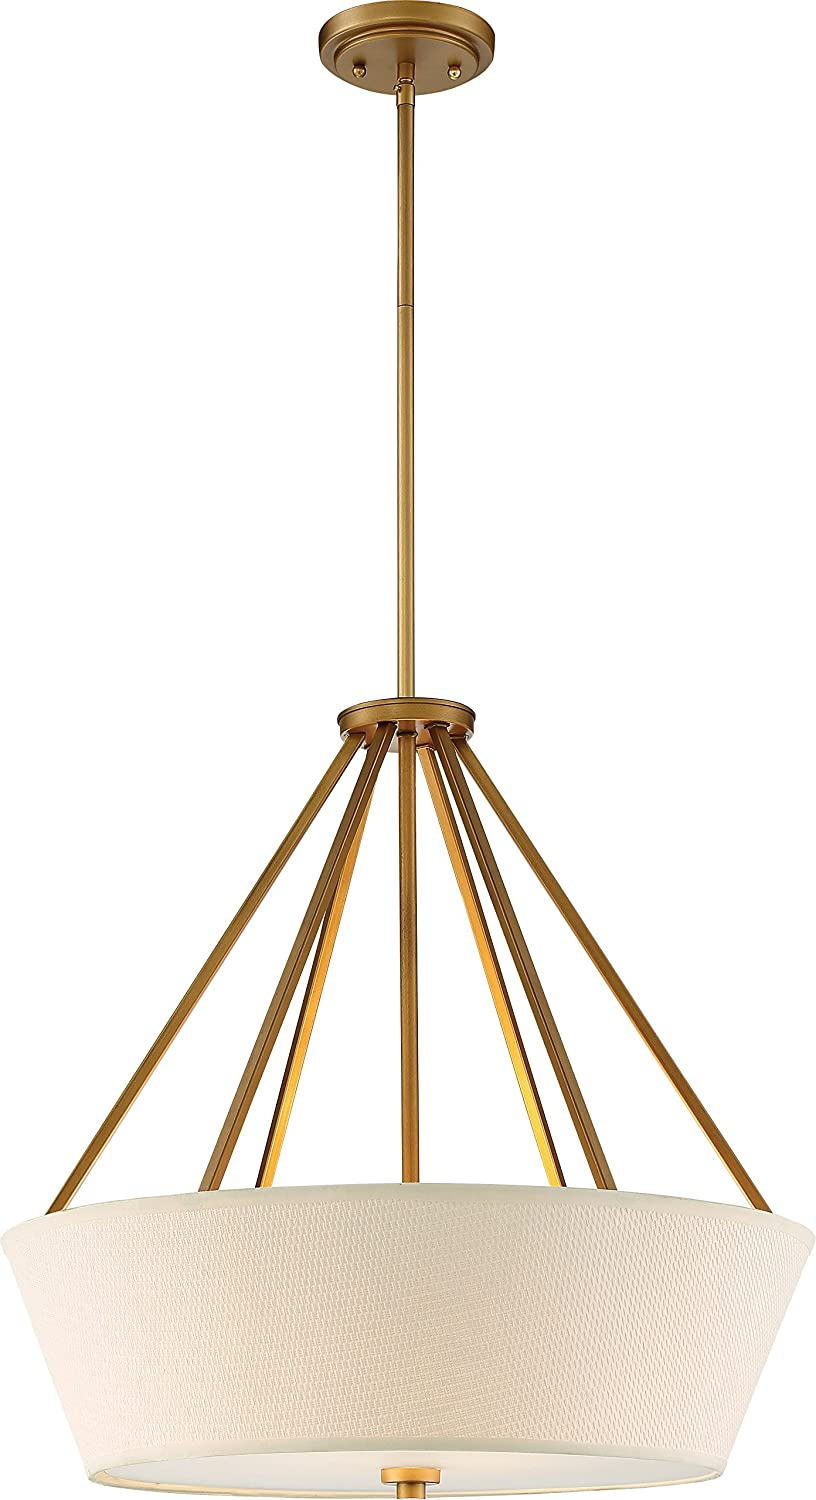 NUVO 60 5841 Four Max 71% OFF Light Recommended Brass of Pack 1 Pendant